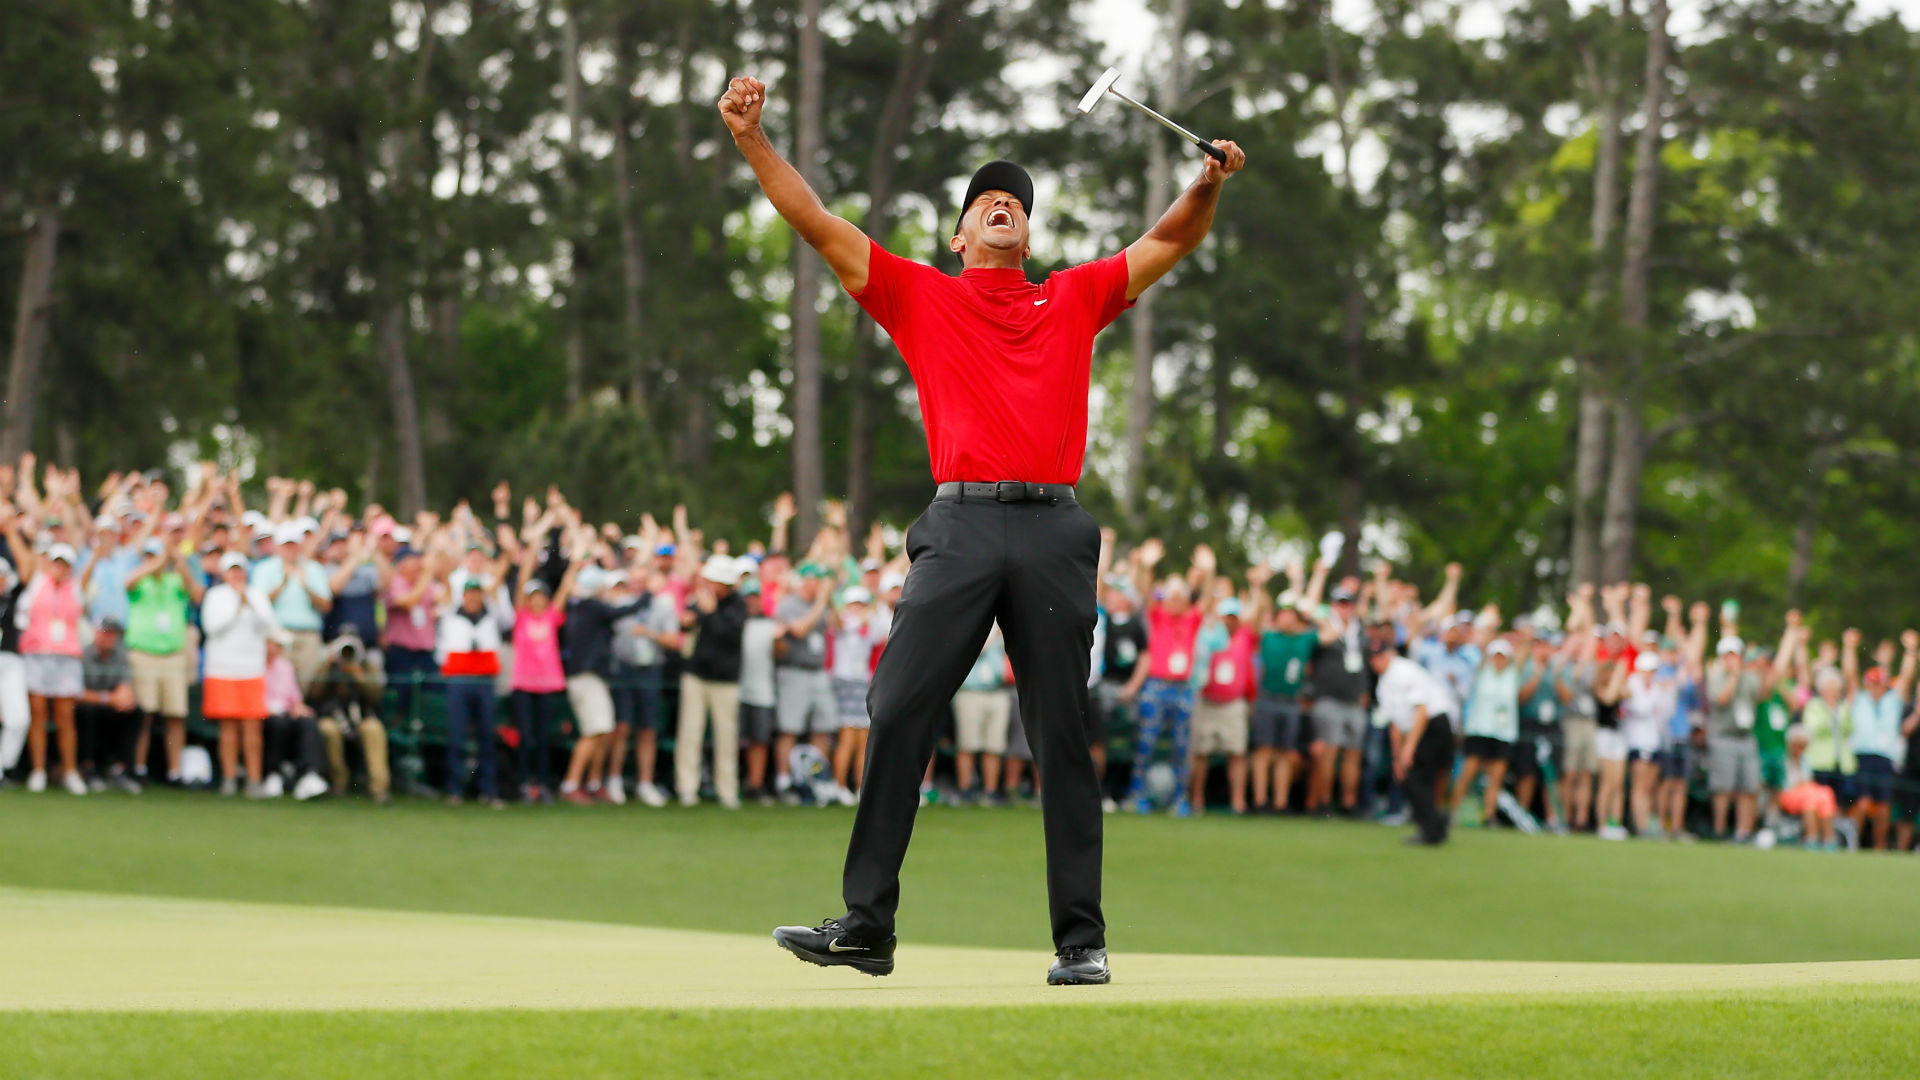 Greatest comeback story in sports! Twitter reacts after Woods reigns at Augusta again